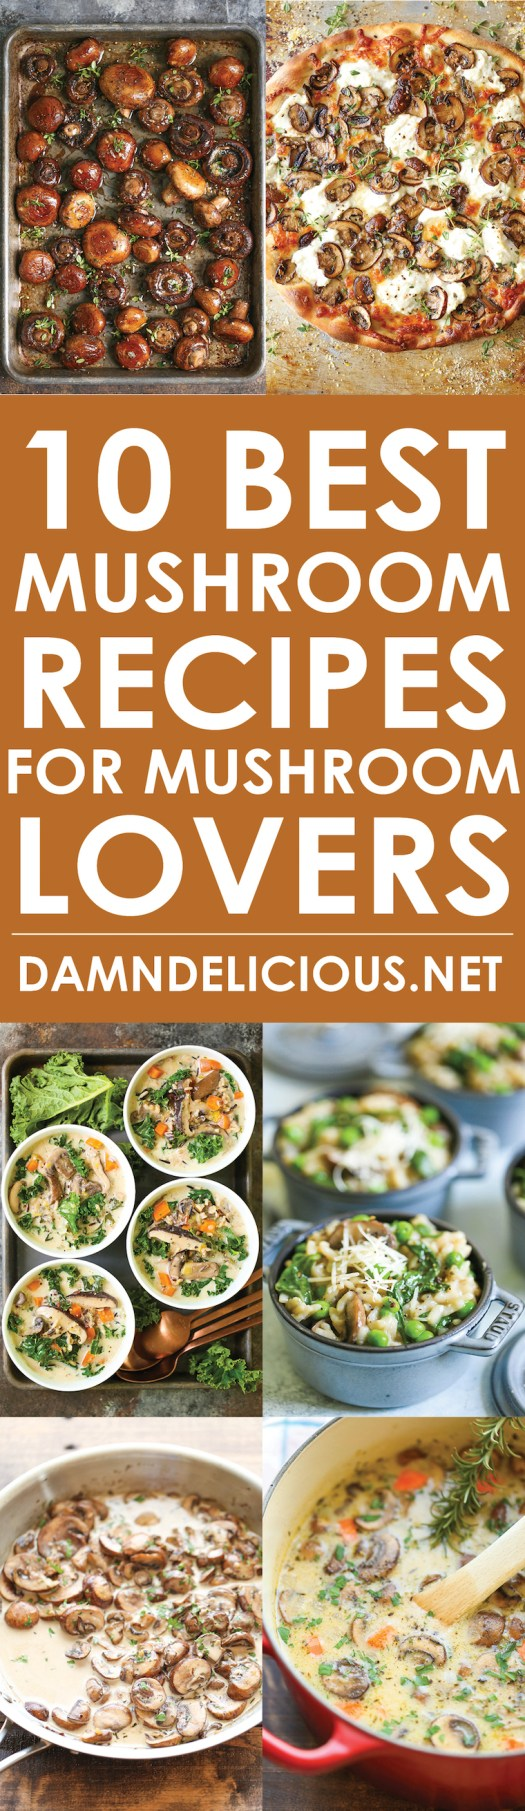 10 Best Mushroom Recipes for Mushroom Lovers - From the most amazing white mushroom pizza to the creamiest IP mushroom risotto, these recipes are THE BEST!!